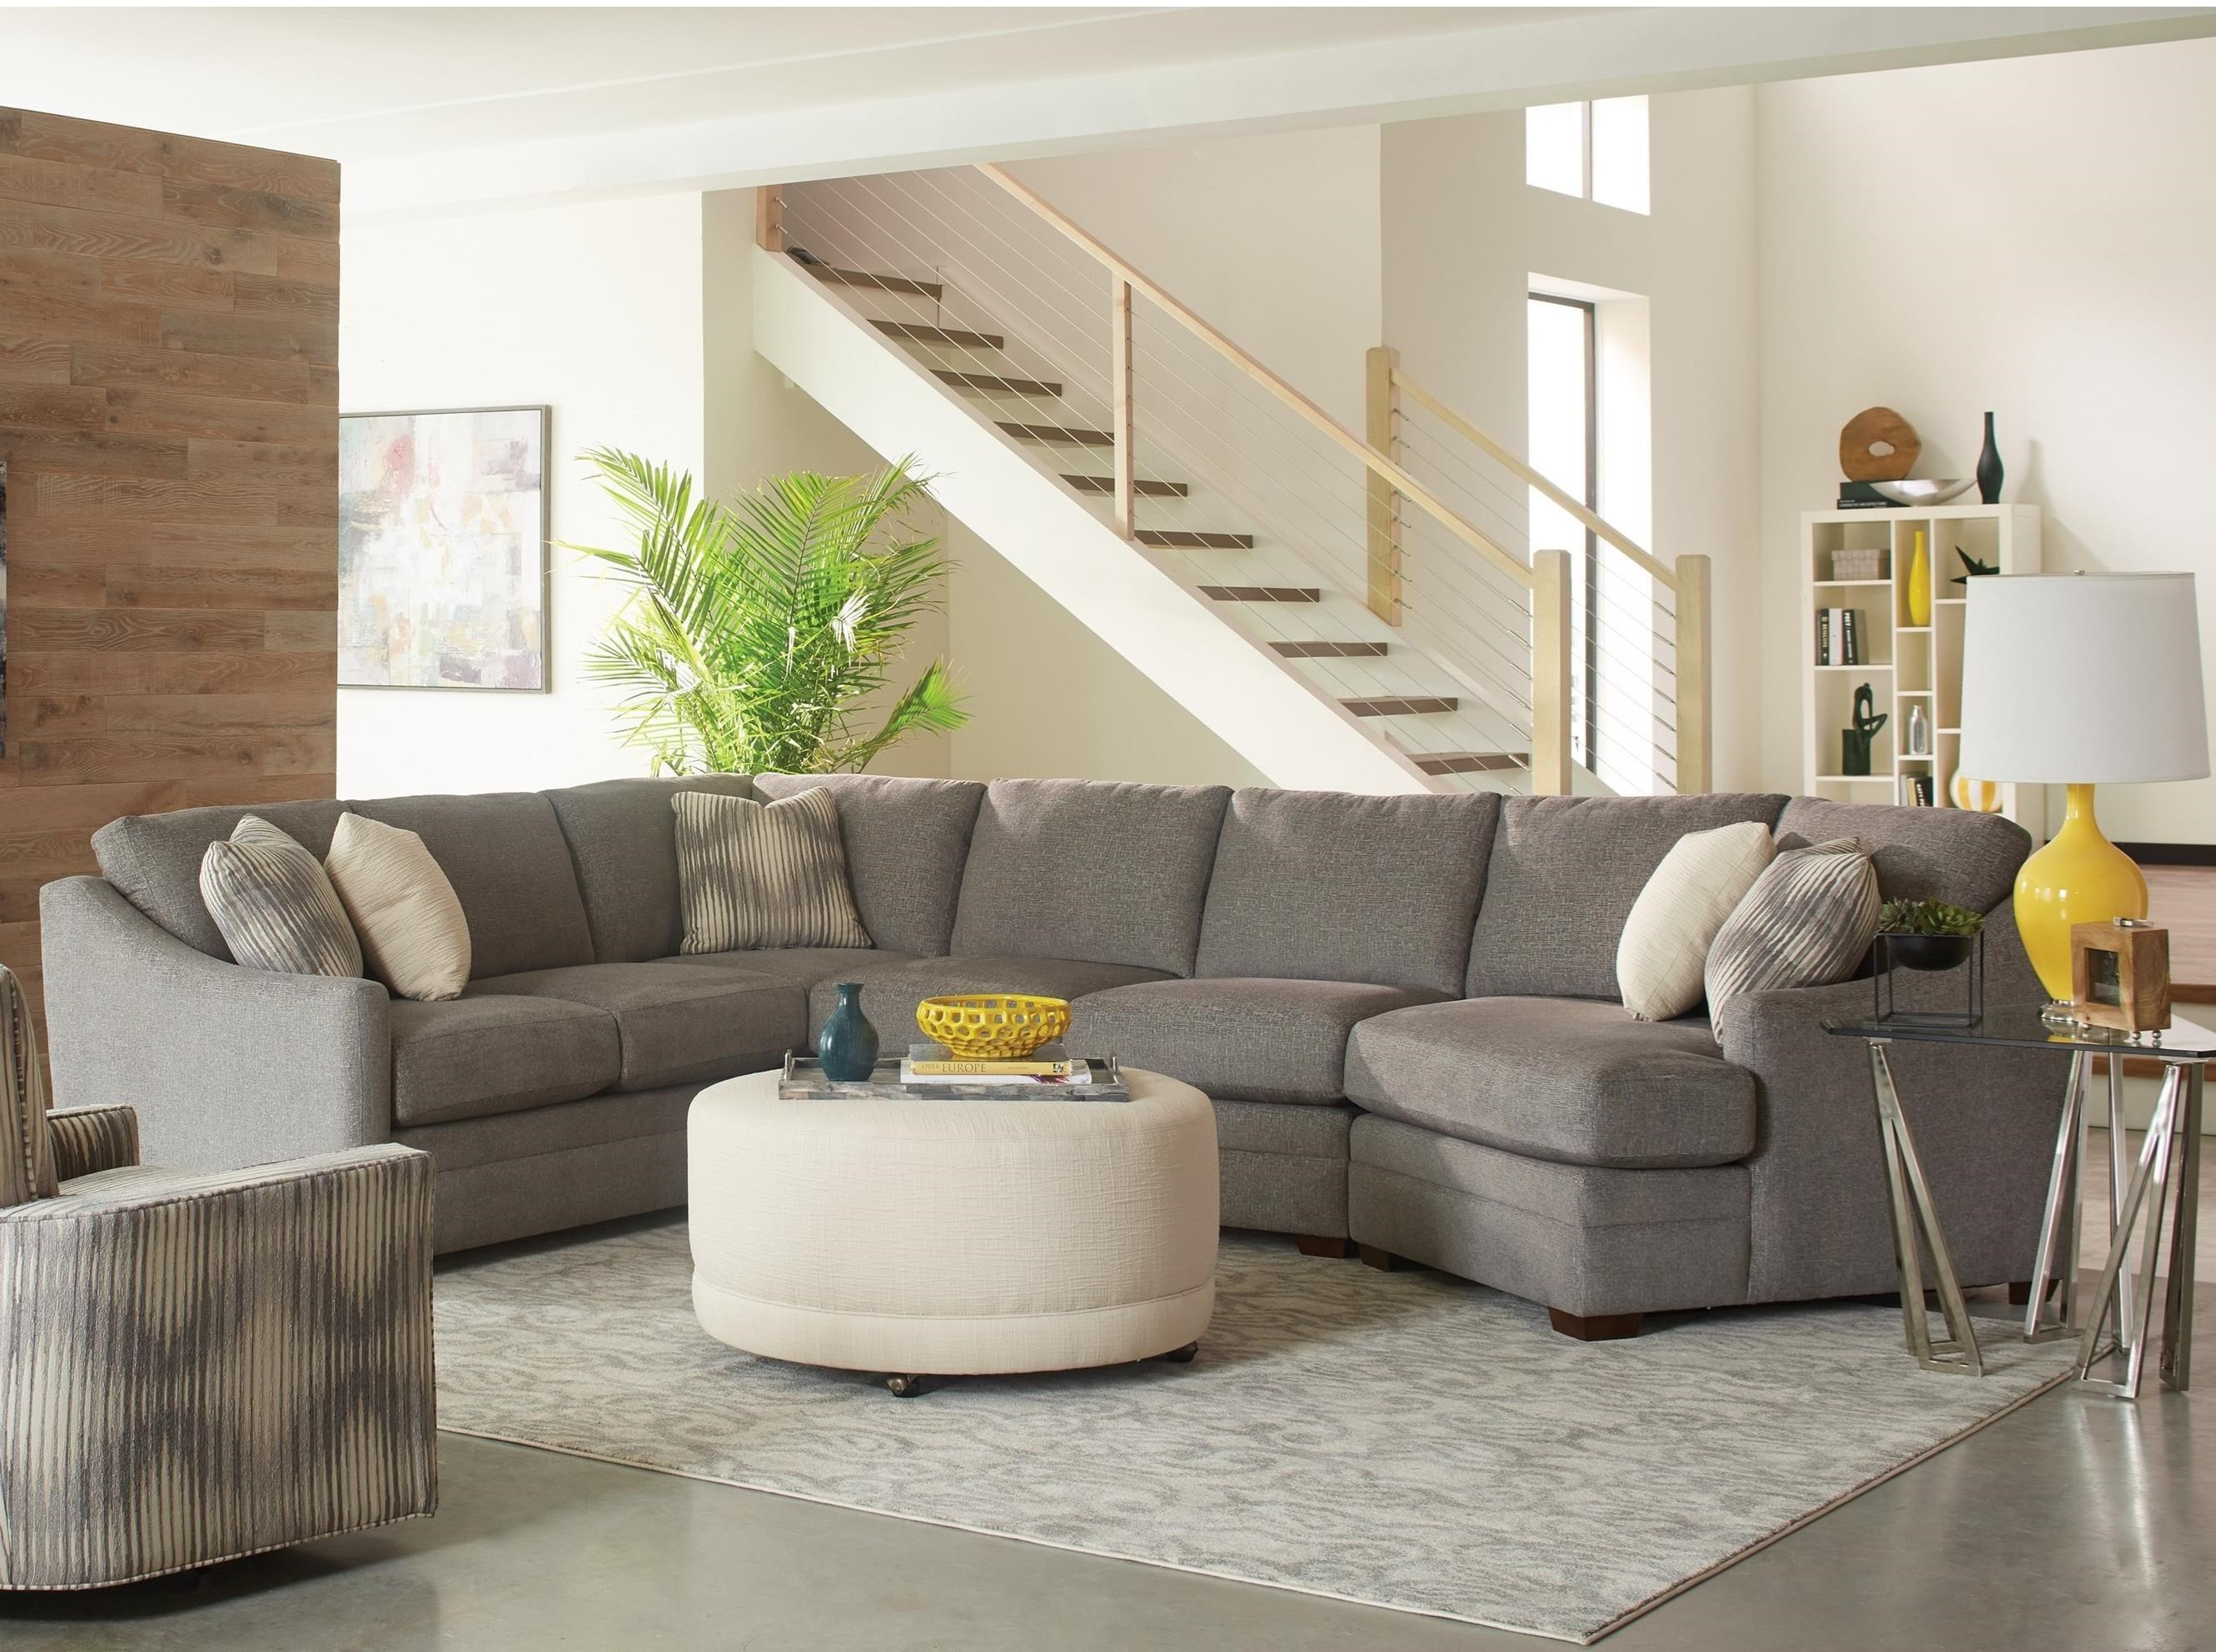 customize your sectional sofa buy single bed f9 custom collection customizable three piece with track arms and semi attached backs